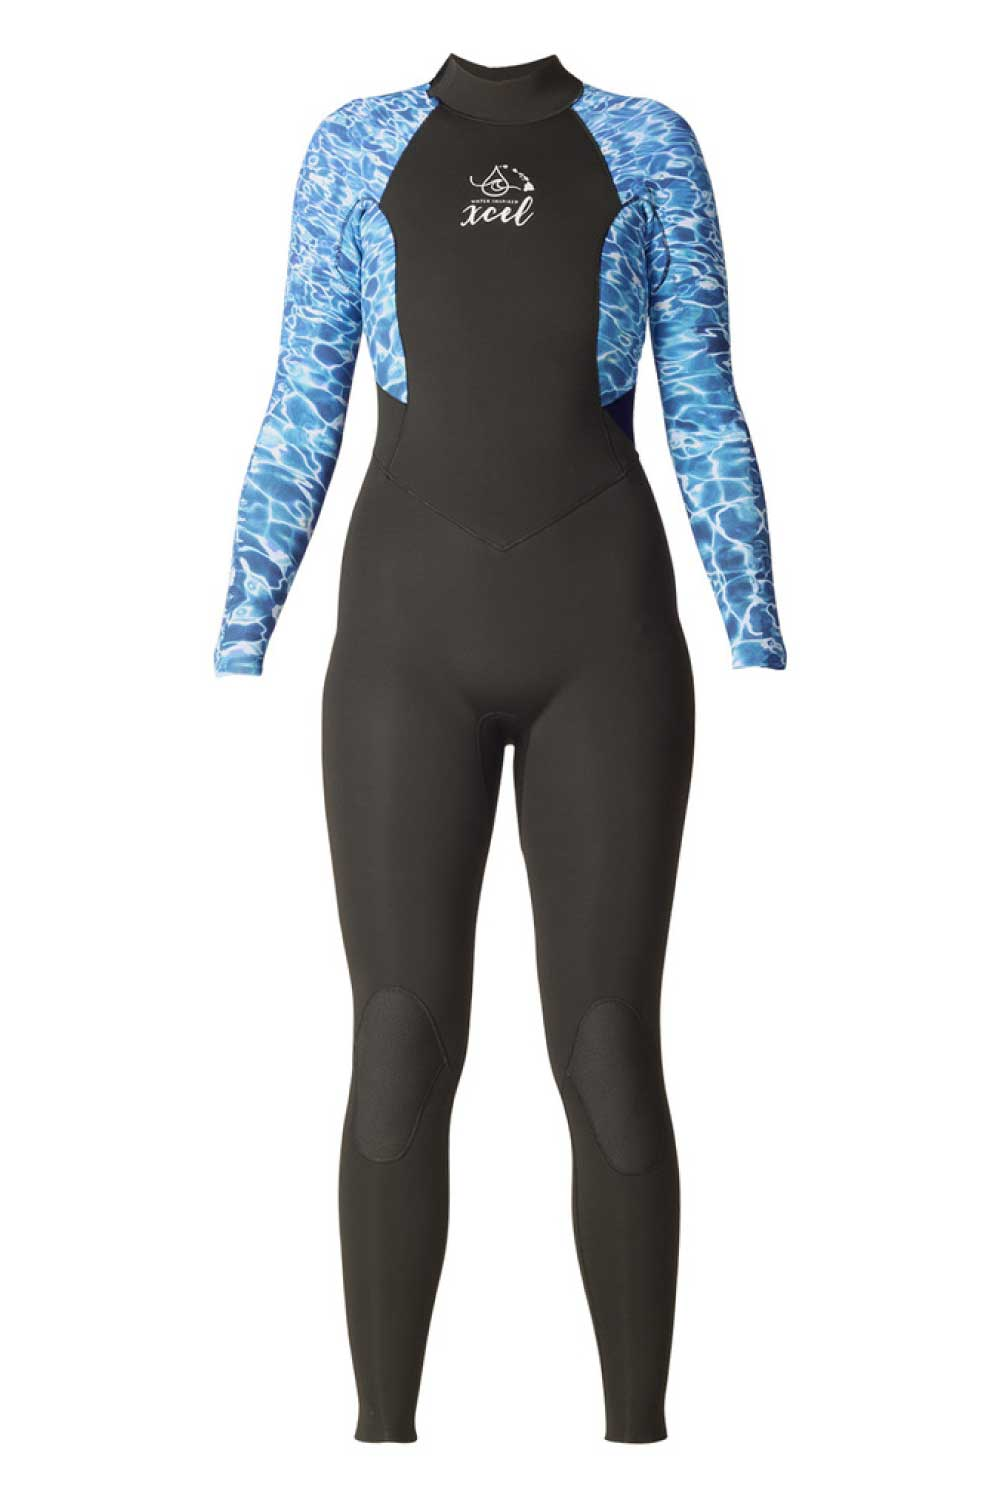 XCEL Womens AXIS 3/2mm Full Suit Steamer